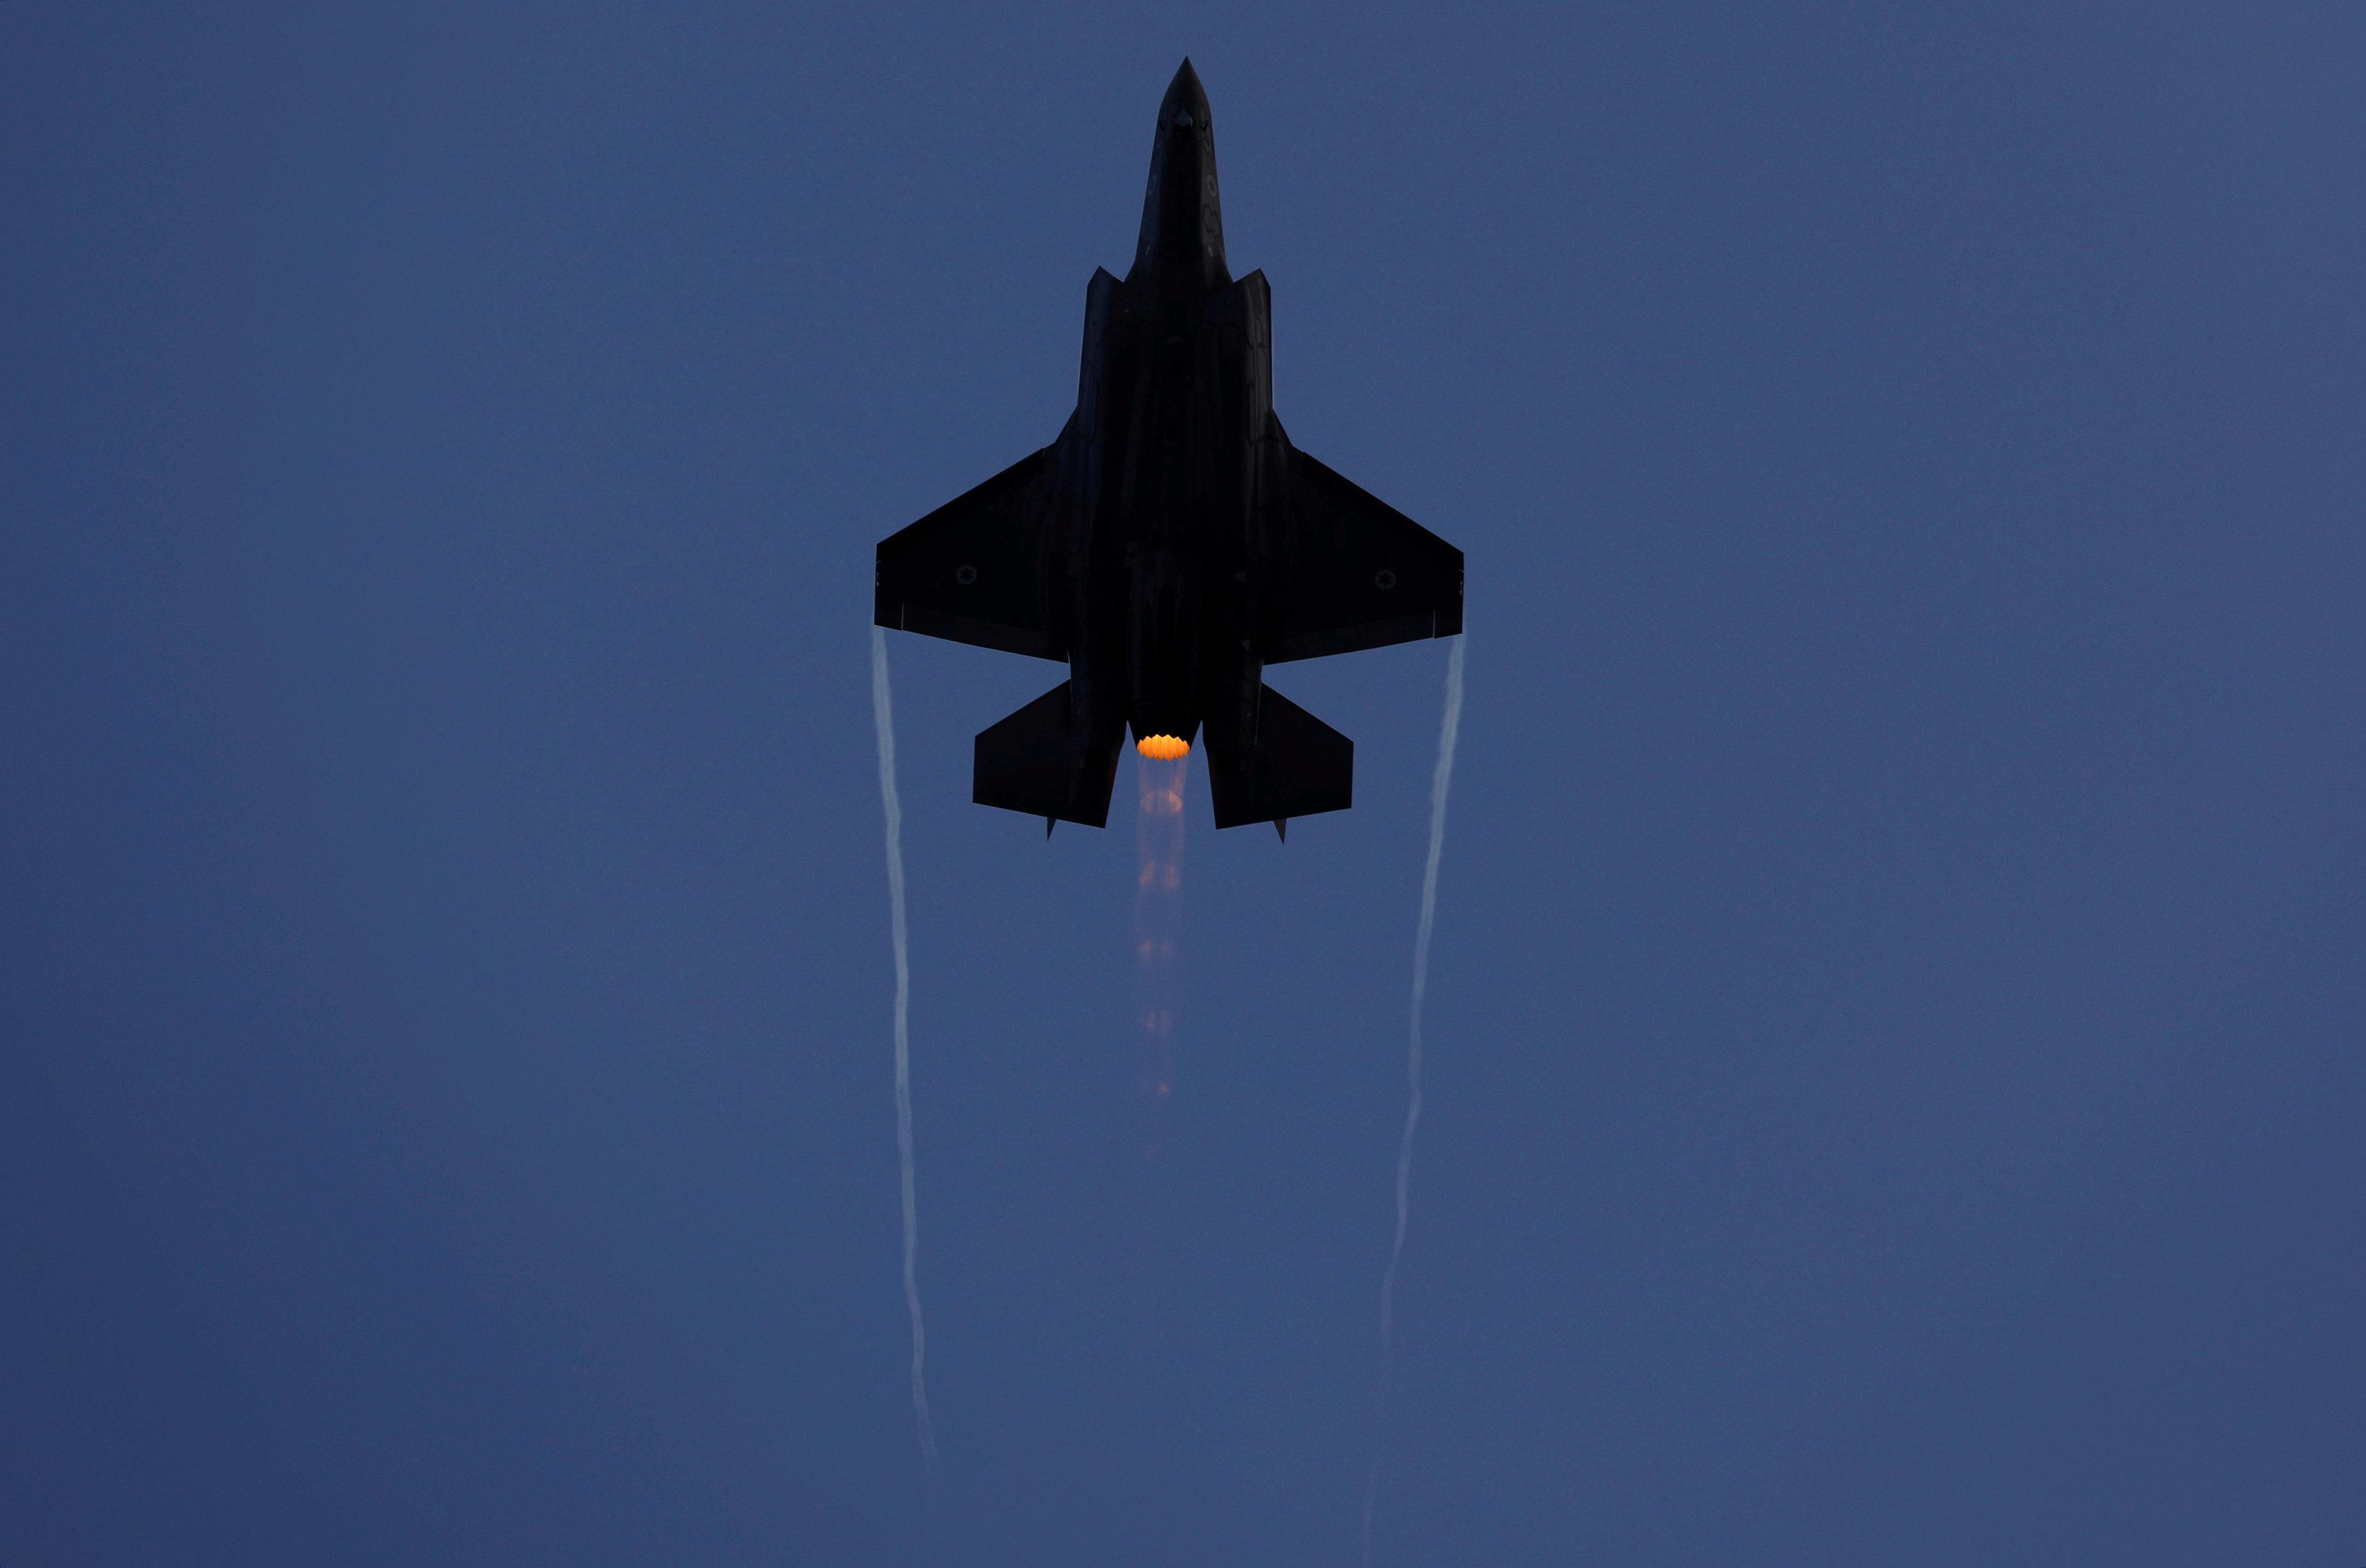 An Israeli Air Force F-35 fighter jet flies during an aerial demonstration at a graduation ceremony for Israeli air force pilots at the Hatzerim air base in southern Israel December 29, 2016.  Amir Cohen